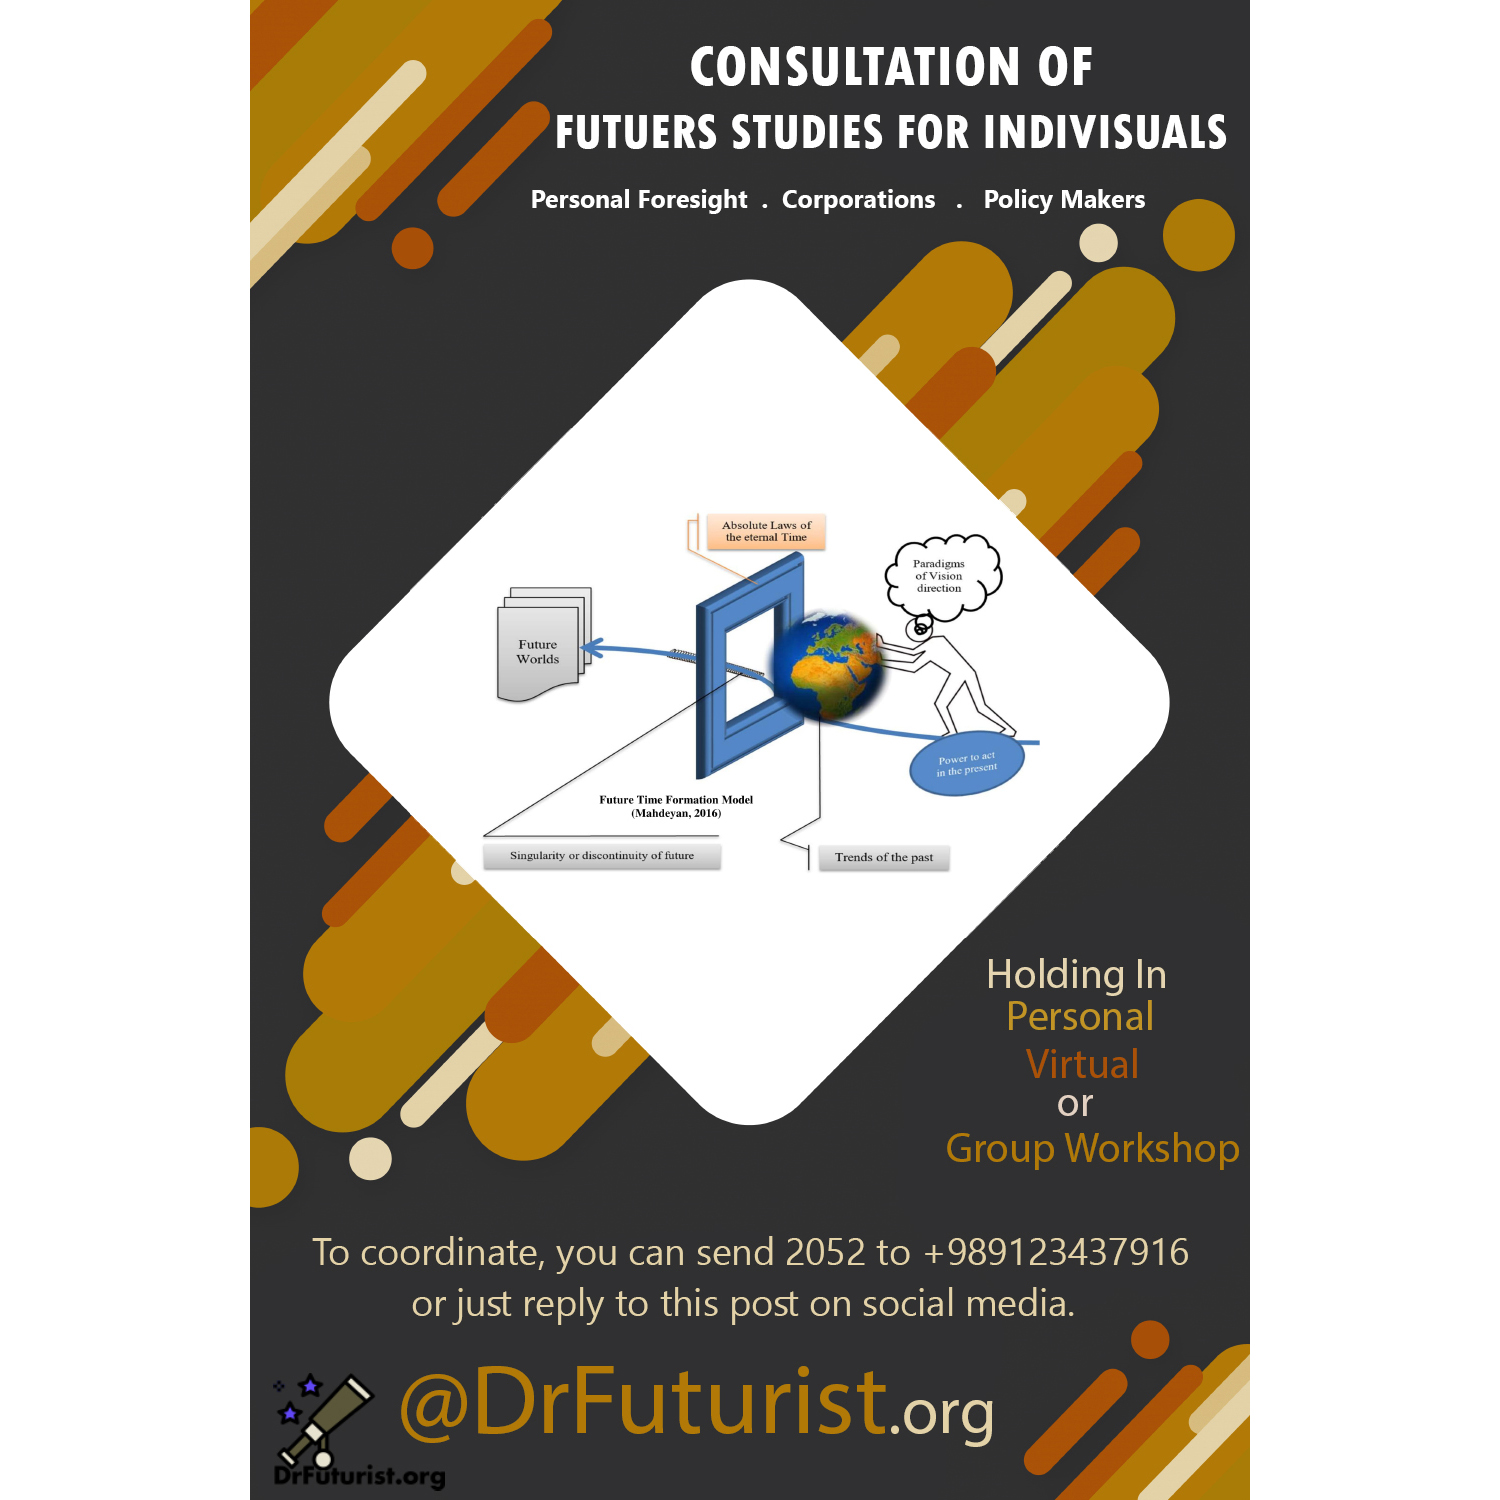 Consultation of Futures Studies for Individuals. Consultation of Personal Foresight, Corporations, Policy Makers